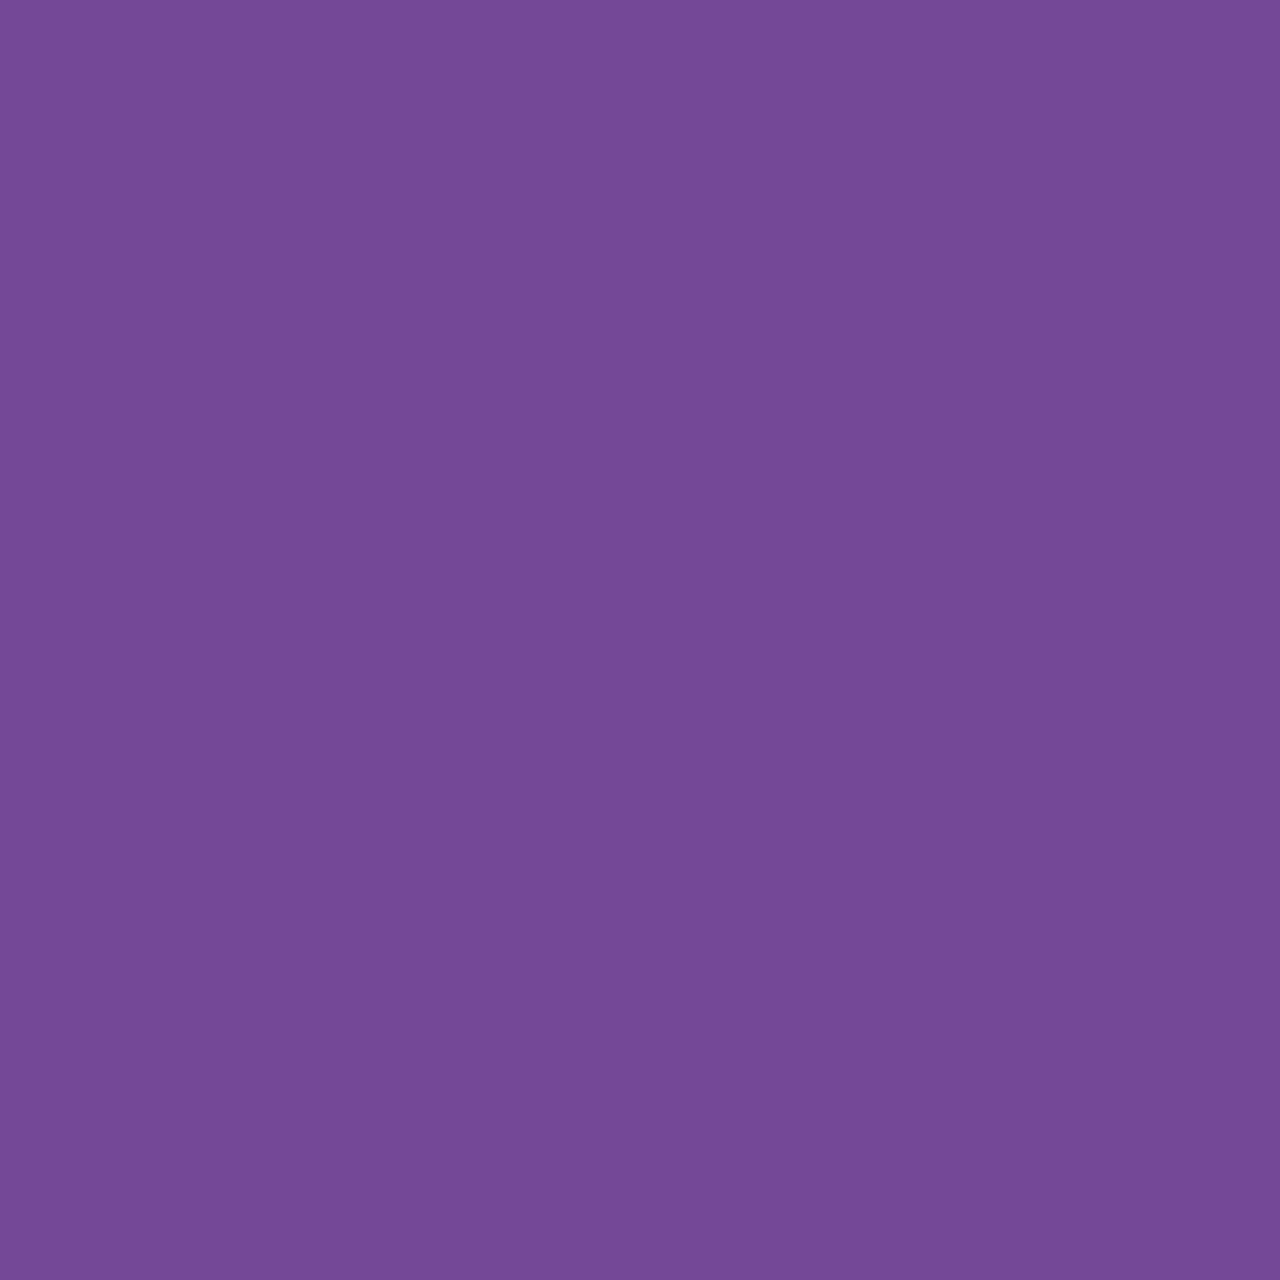 #0048 Rosco Gels Roscolux Rose Purple, 20x24""